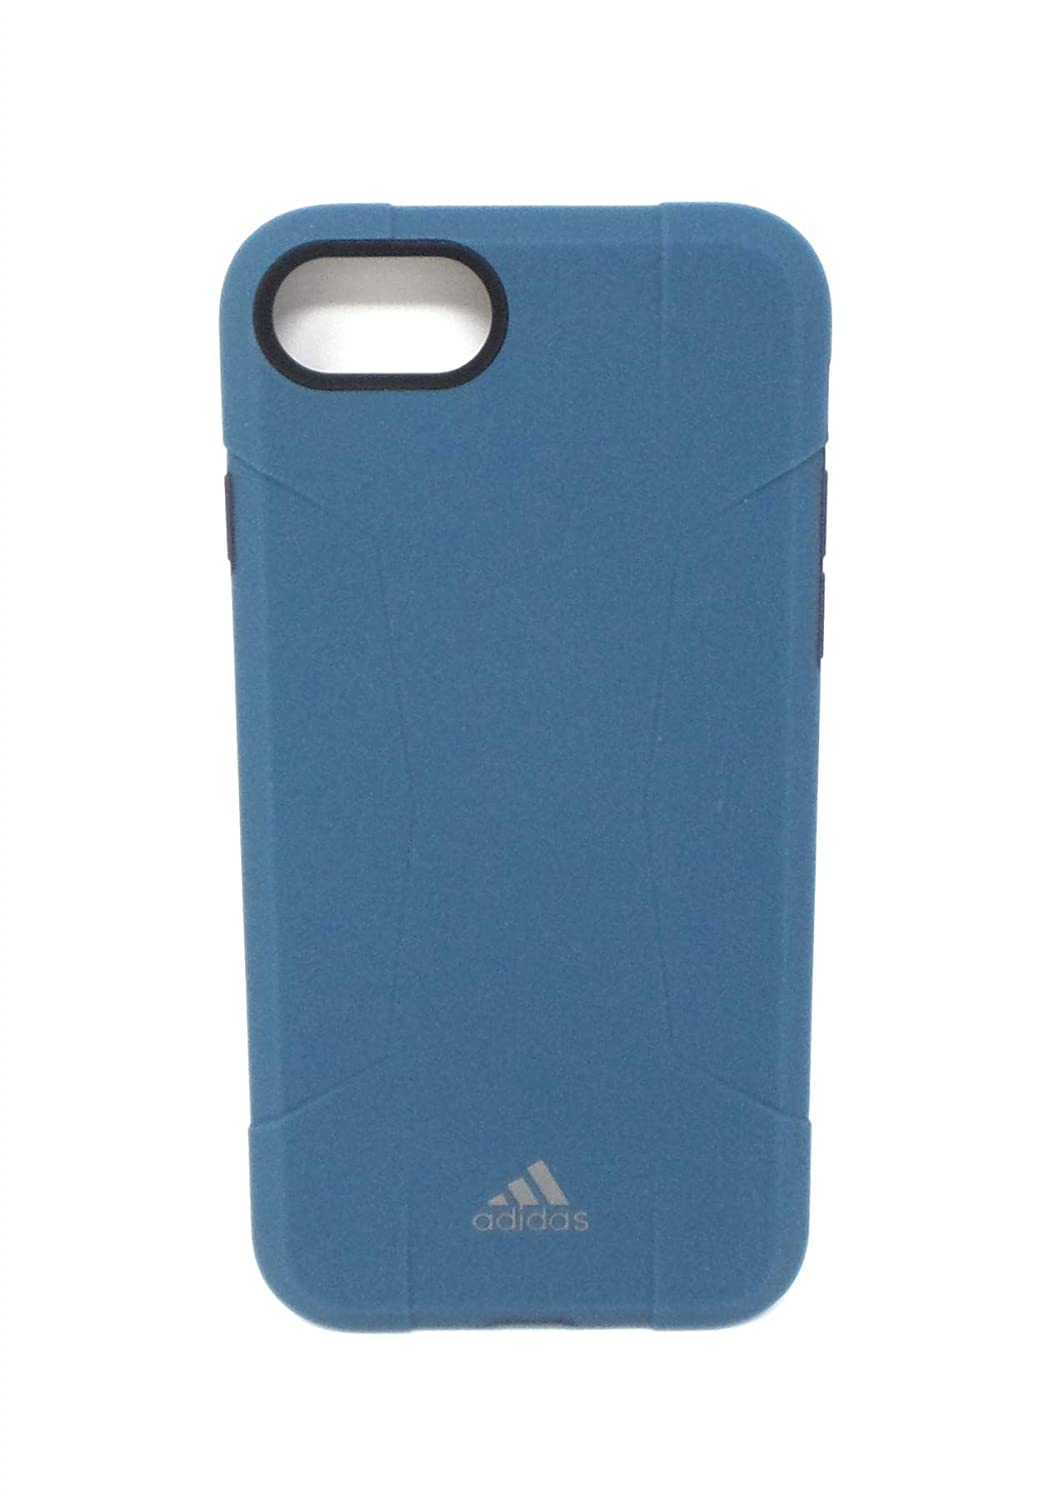 Amazon.com: adidas Solo - Carcasa de doble capa para iPhone ...